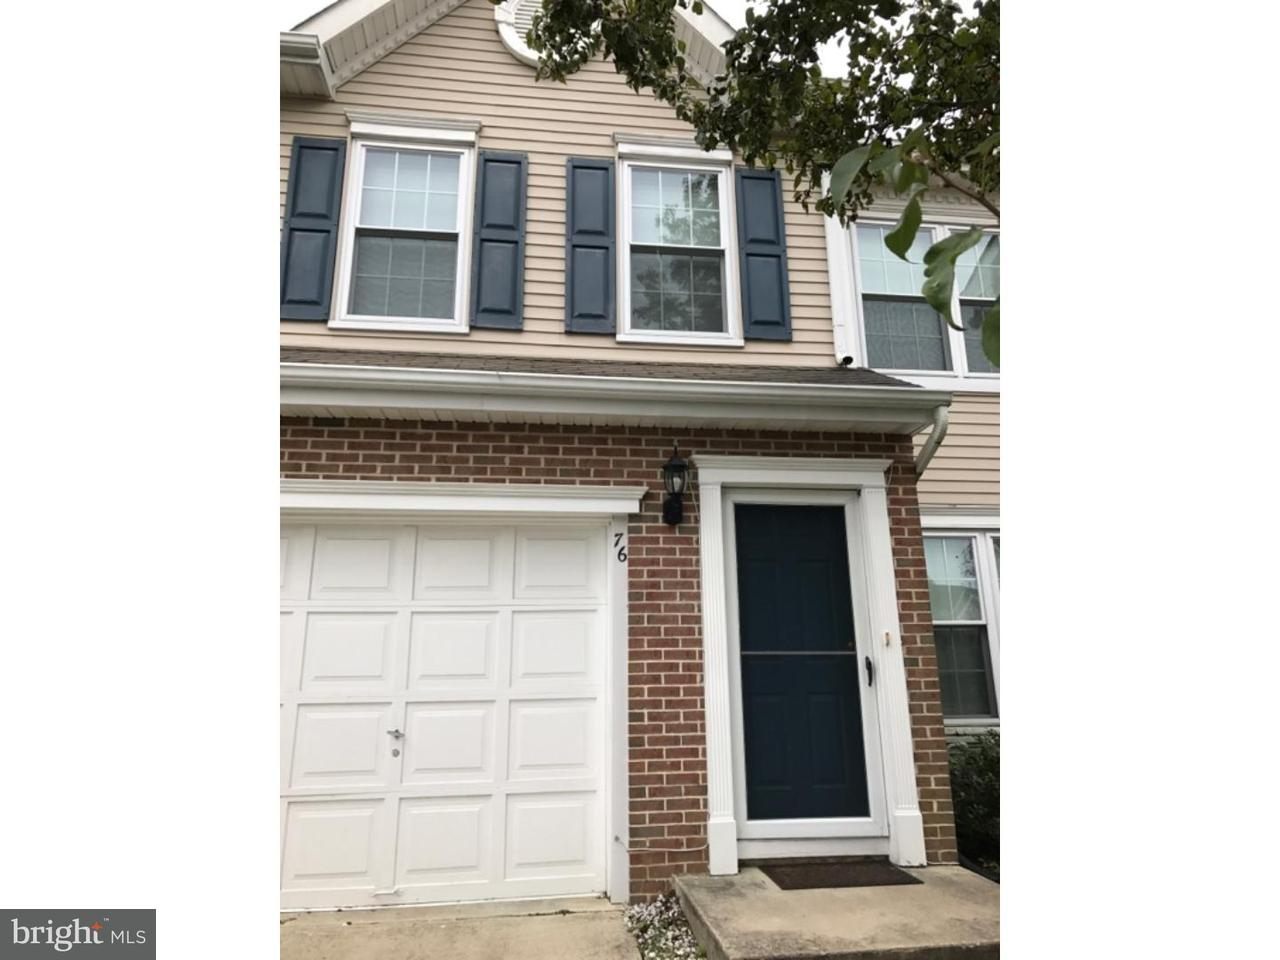 Condominium for Rent at 76 BIDDLE WAY Mount Laurel, New Jersey 08054 United States